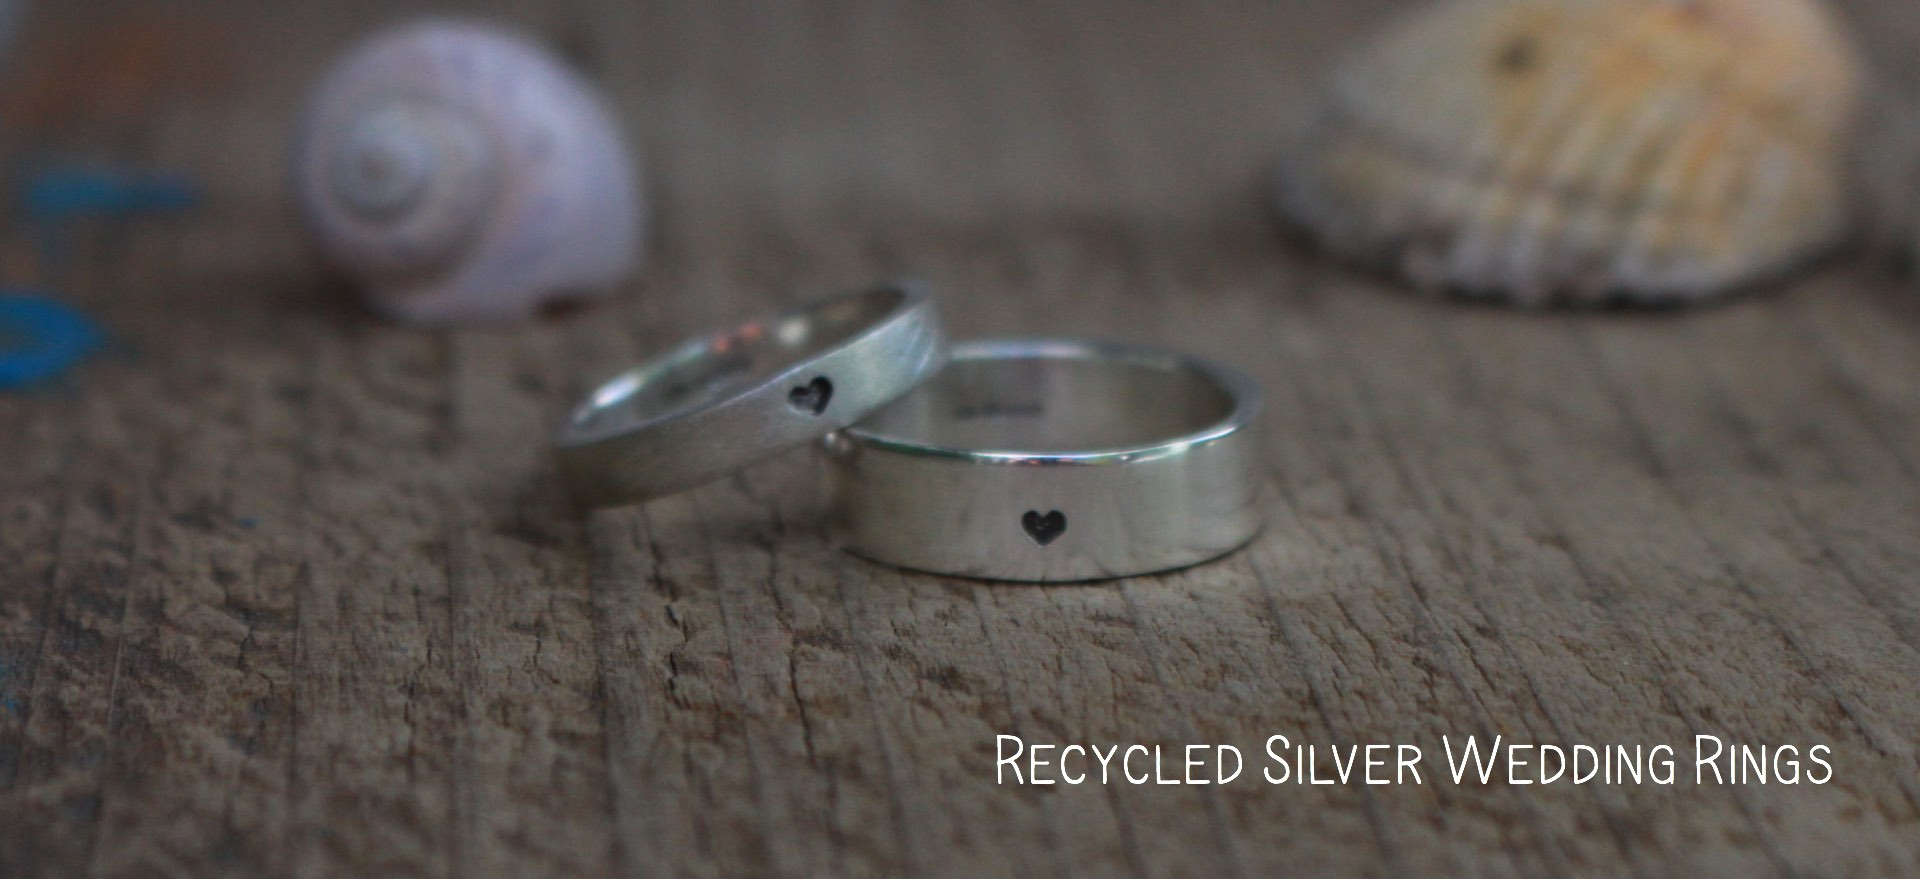 Recycled silver wedding rings